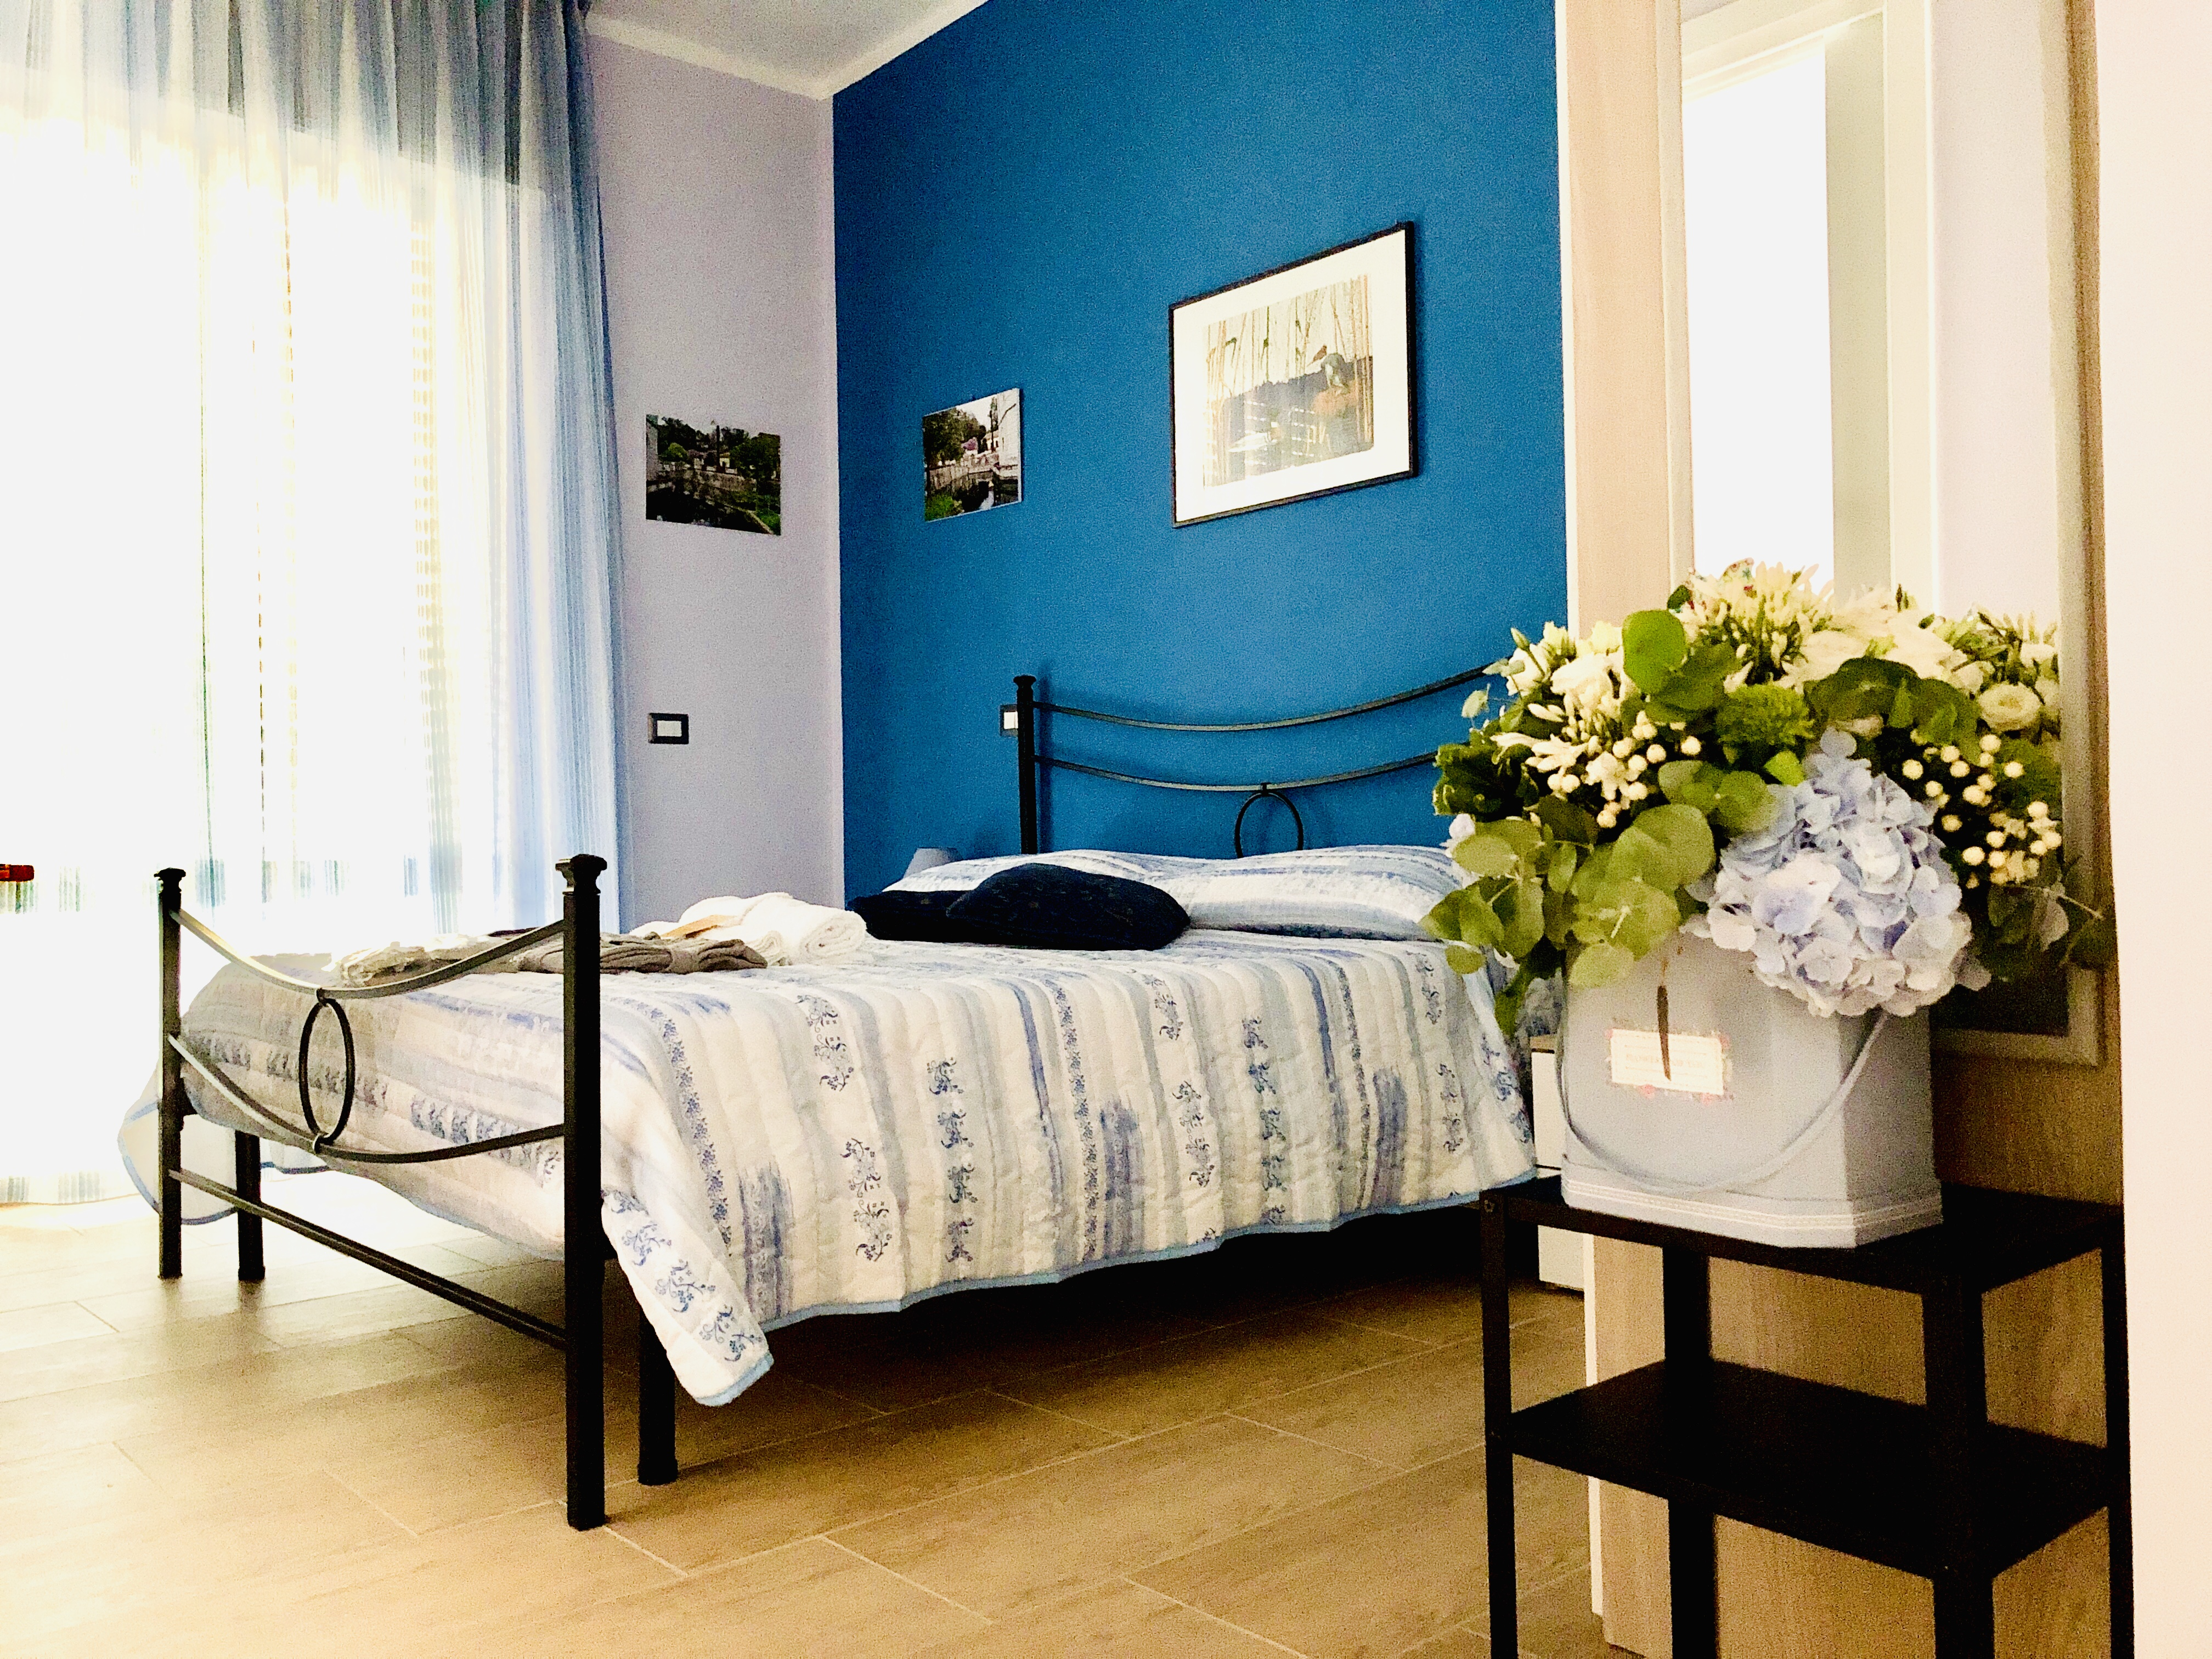 Come Allestire Un B&b city b&b 4u - bed and breakfasts for rent in caserta